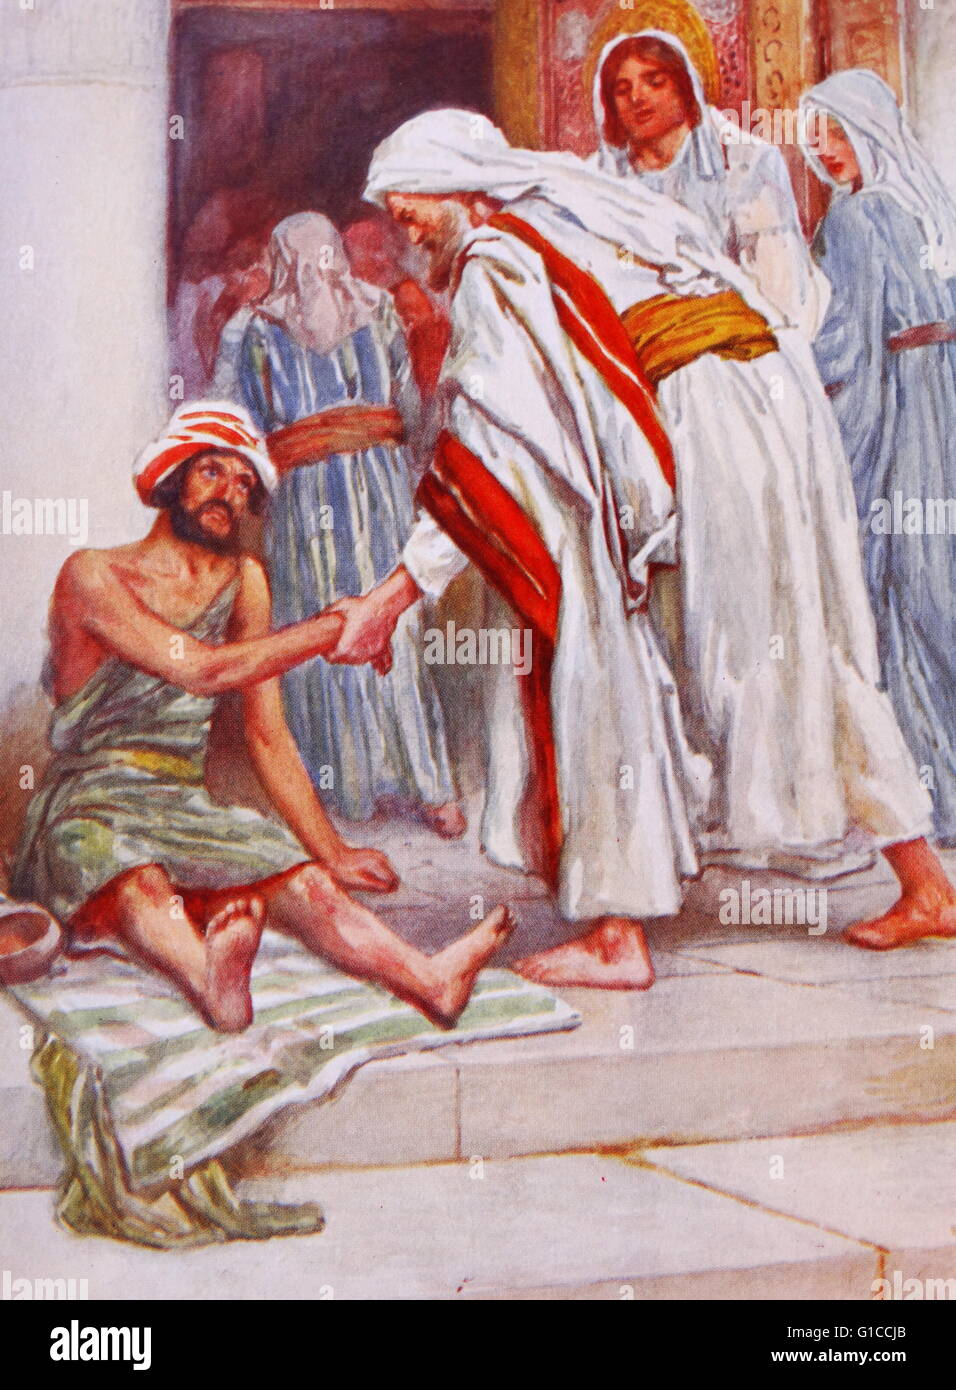 Jesus heals a lame man. illustration by Arthur A. Dixon 1872-1959. From the Precious Gift: Bible Stories for Children - Stock Image